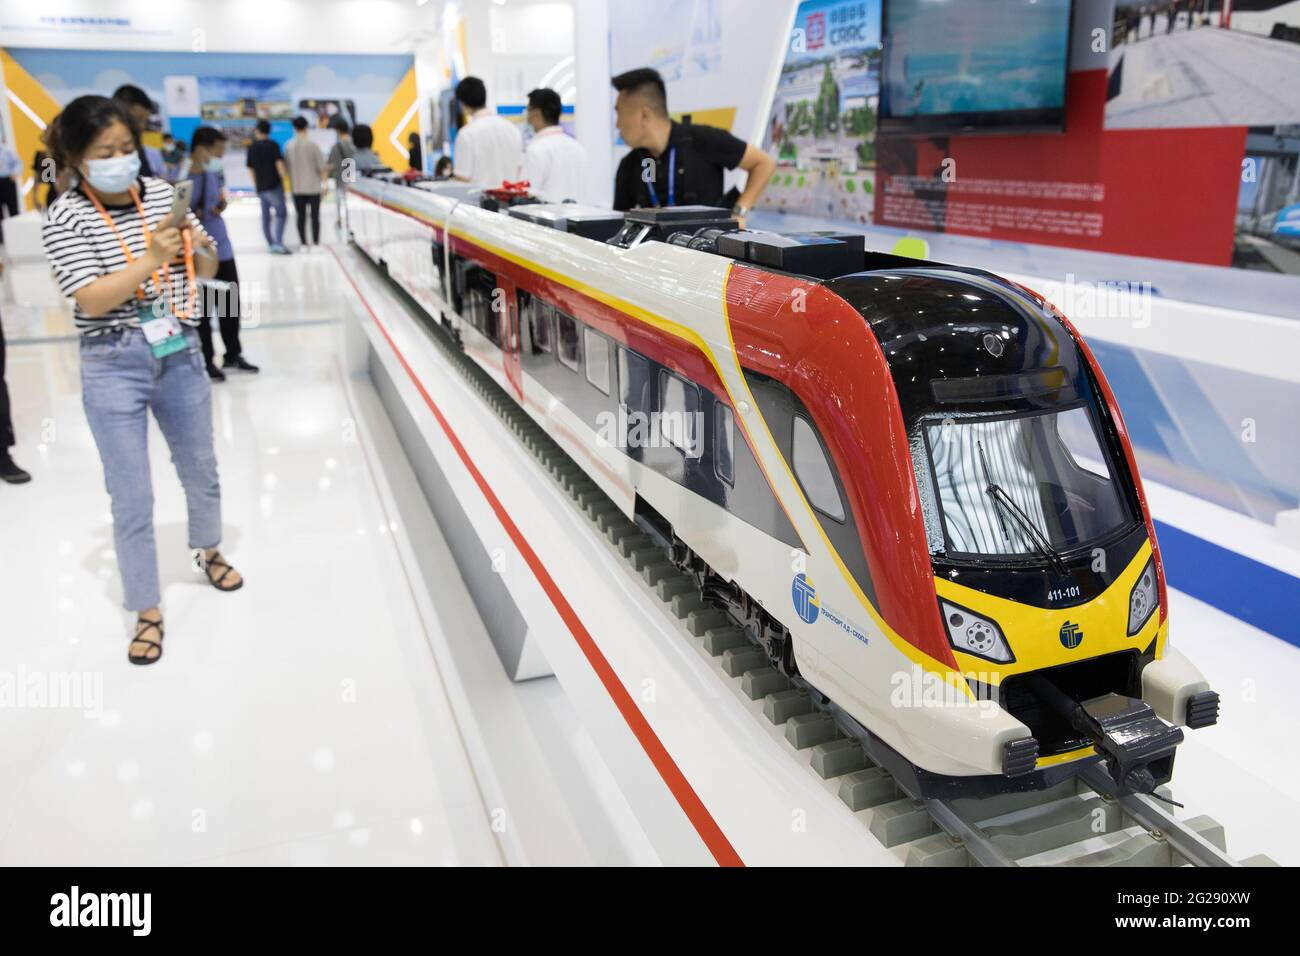 """Ningbo, China's Zhejiang Province. 9th June, 2021. A visitor takes photos of a bullet train model at the second China-Central and Eastern European Countries (CEEC) Expo in Ningbo, east China's Zhejiang Province, June 9, 2021. The expo opened to public visitors on Wednesday. Themed """"Fostering a New Development Paradigm, Sharing a Win-Win Opportunity,"""" the expo aims to boost trade between China and Central and Eastern European Countries (CEECs). Credit: Jin Liwang/Xinhua/Alamy Live News Stock Photo"""